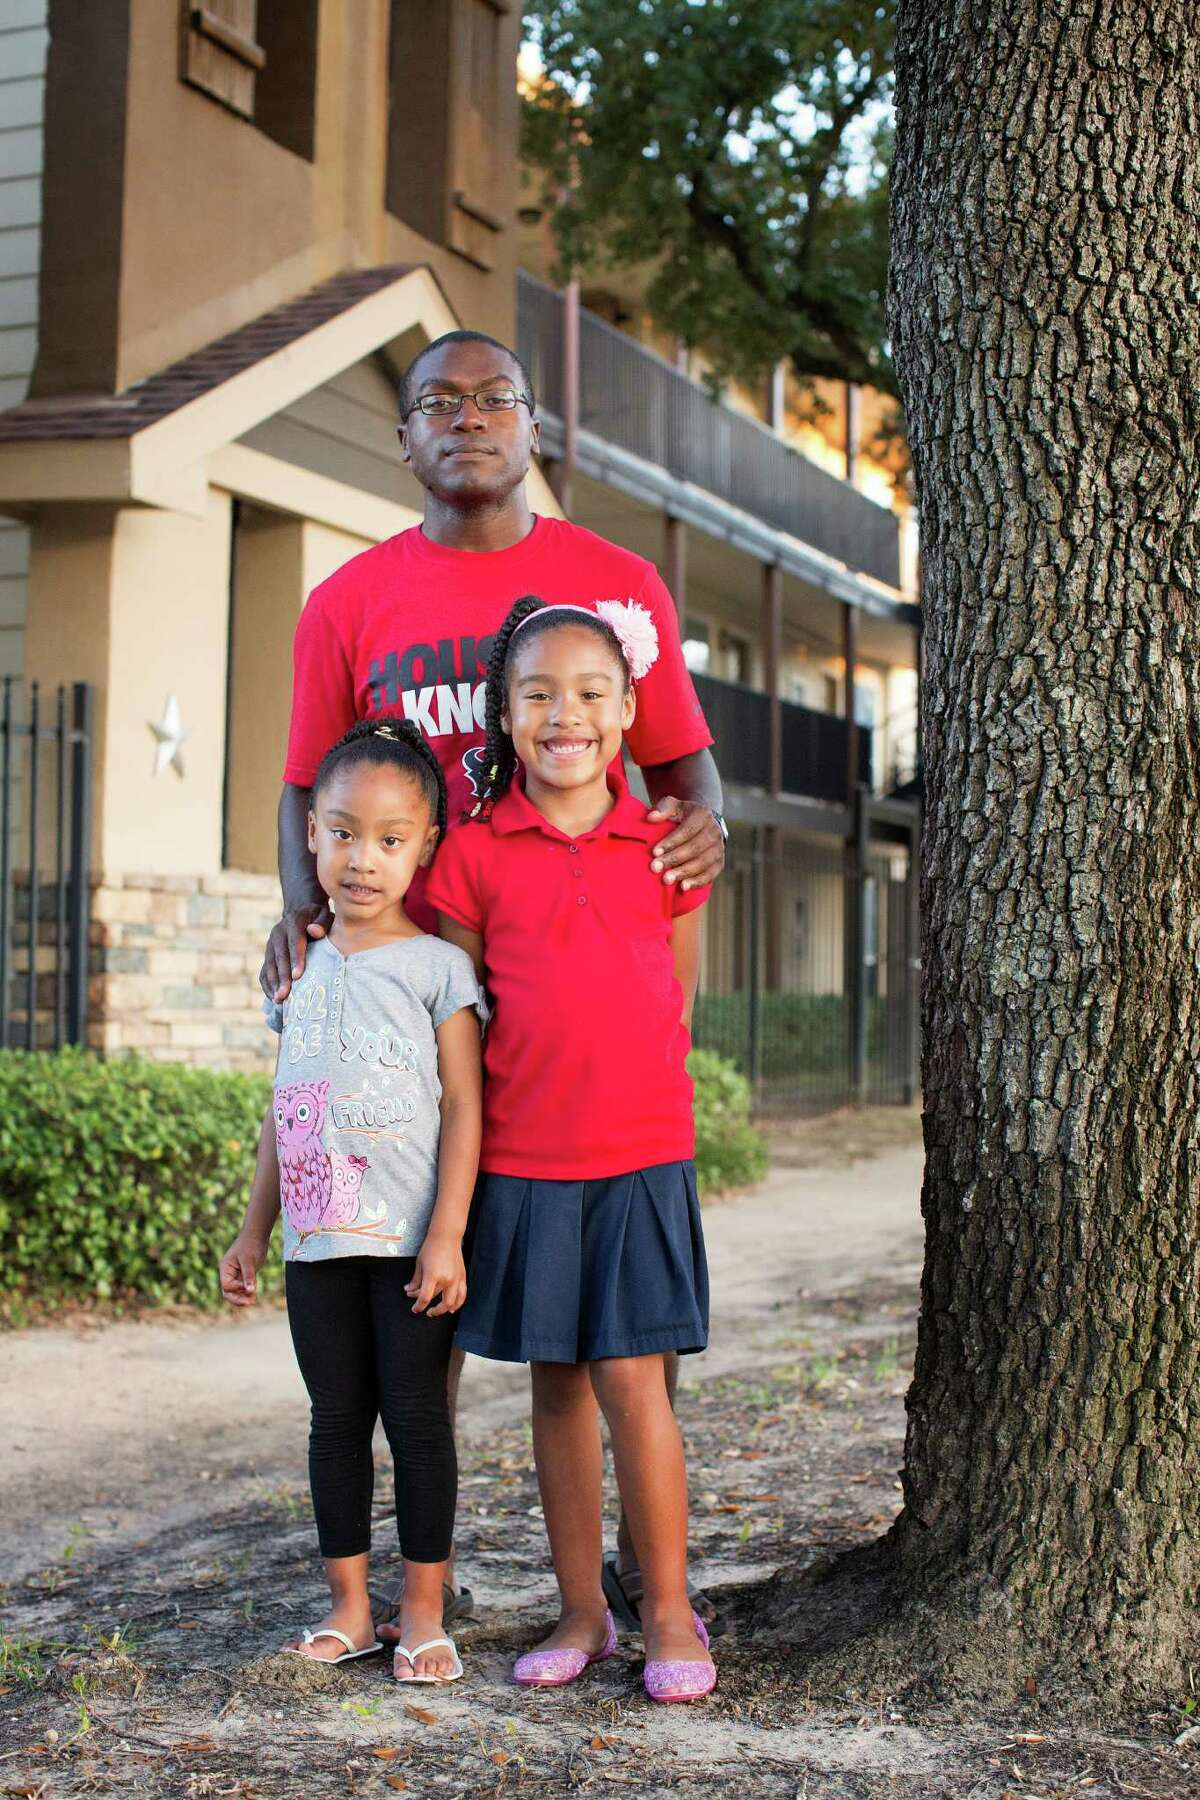 Chester Brown Jr. - shown with his daughters Celena, 5, left, and Chelsea, 6 - says his landlord has informed him that his rent's going up again. It went up $150 a month last fall, and Brown's landlord said